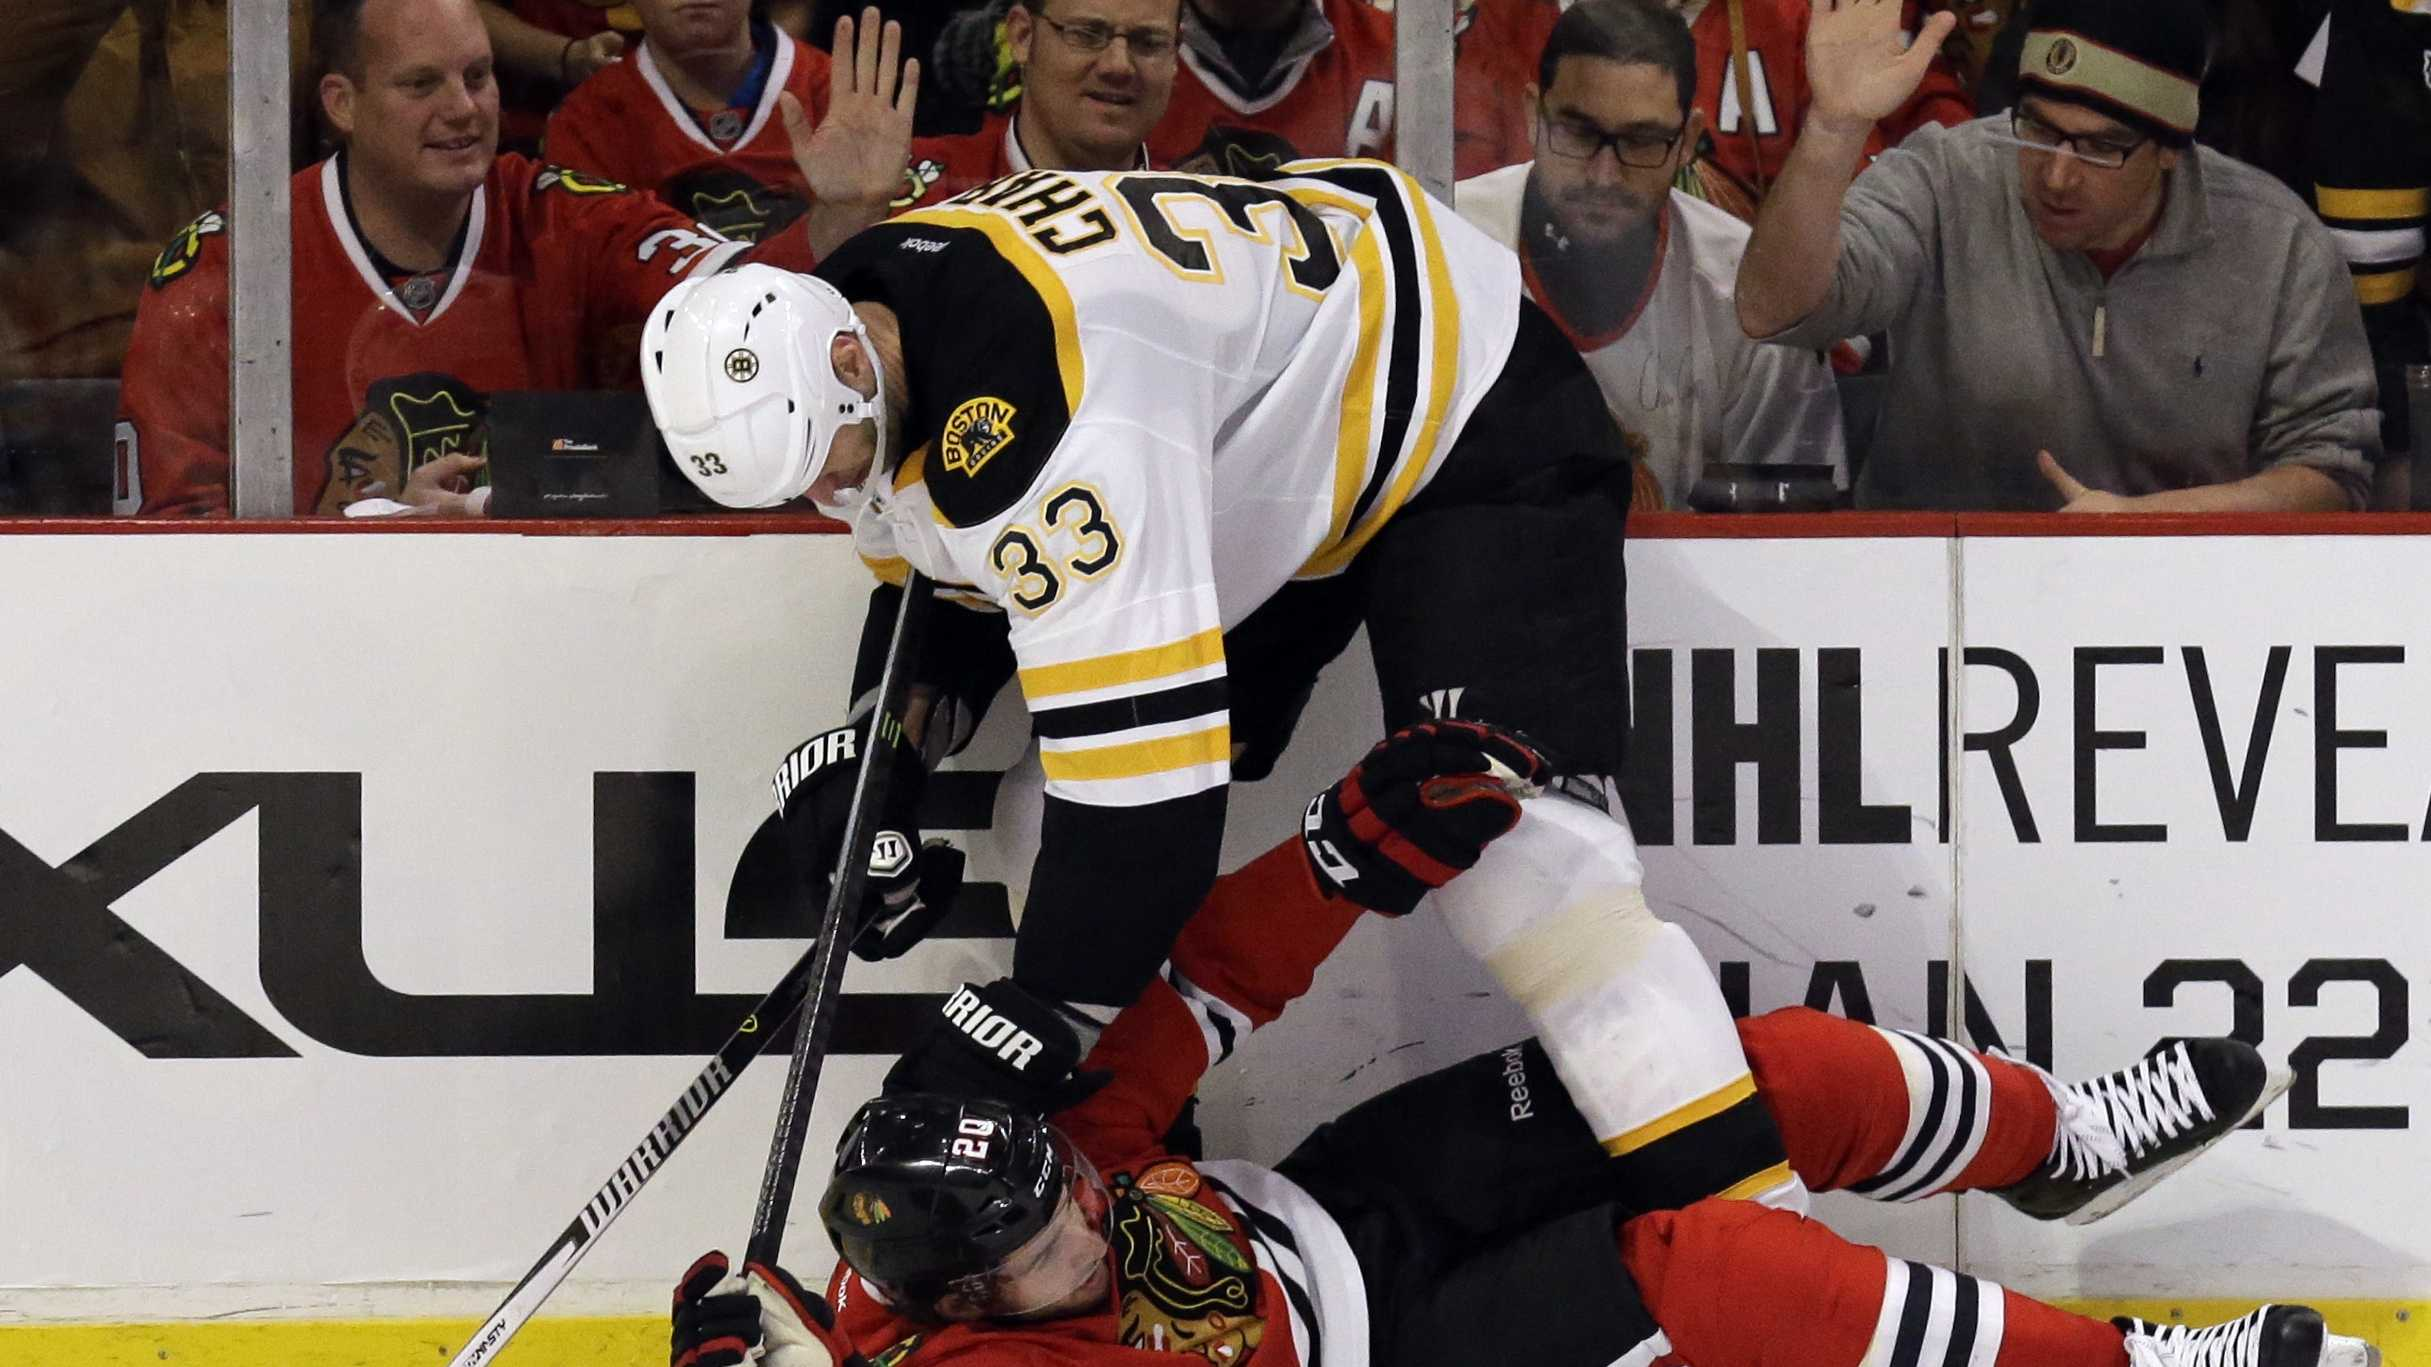 Chicago Blackhawks' Brandon Saad (20), bottom, is checked by Boston Bruins' Zdeno Chara (33) during the second period of an NHL hockey game in Chicago, Sunday, Jan. 19, 2014.